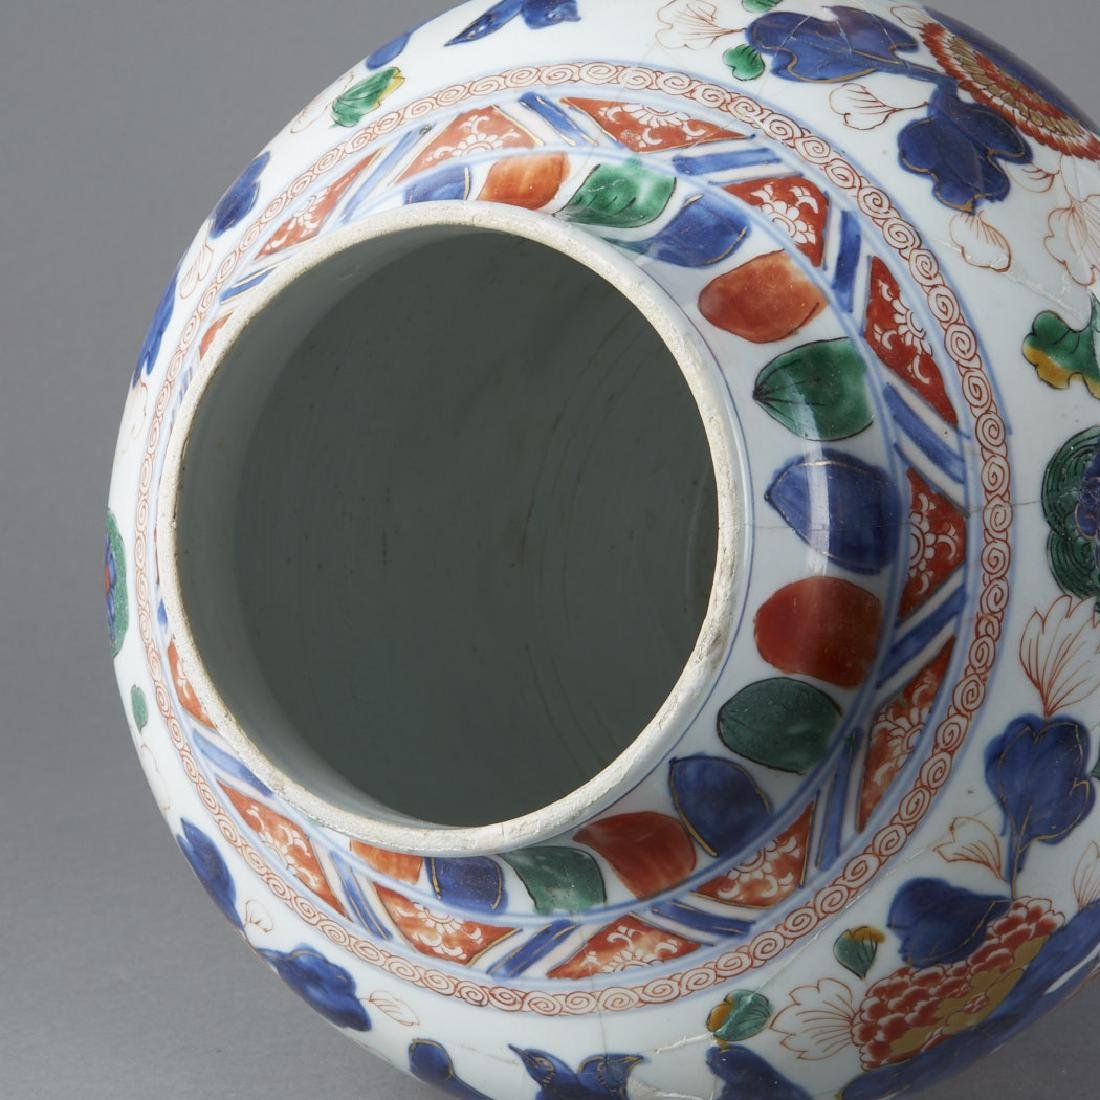 Chinese Ming Porcelain Jar for Mexican Market-BTC Acpt - 6